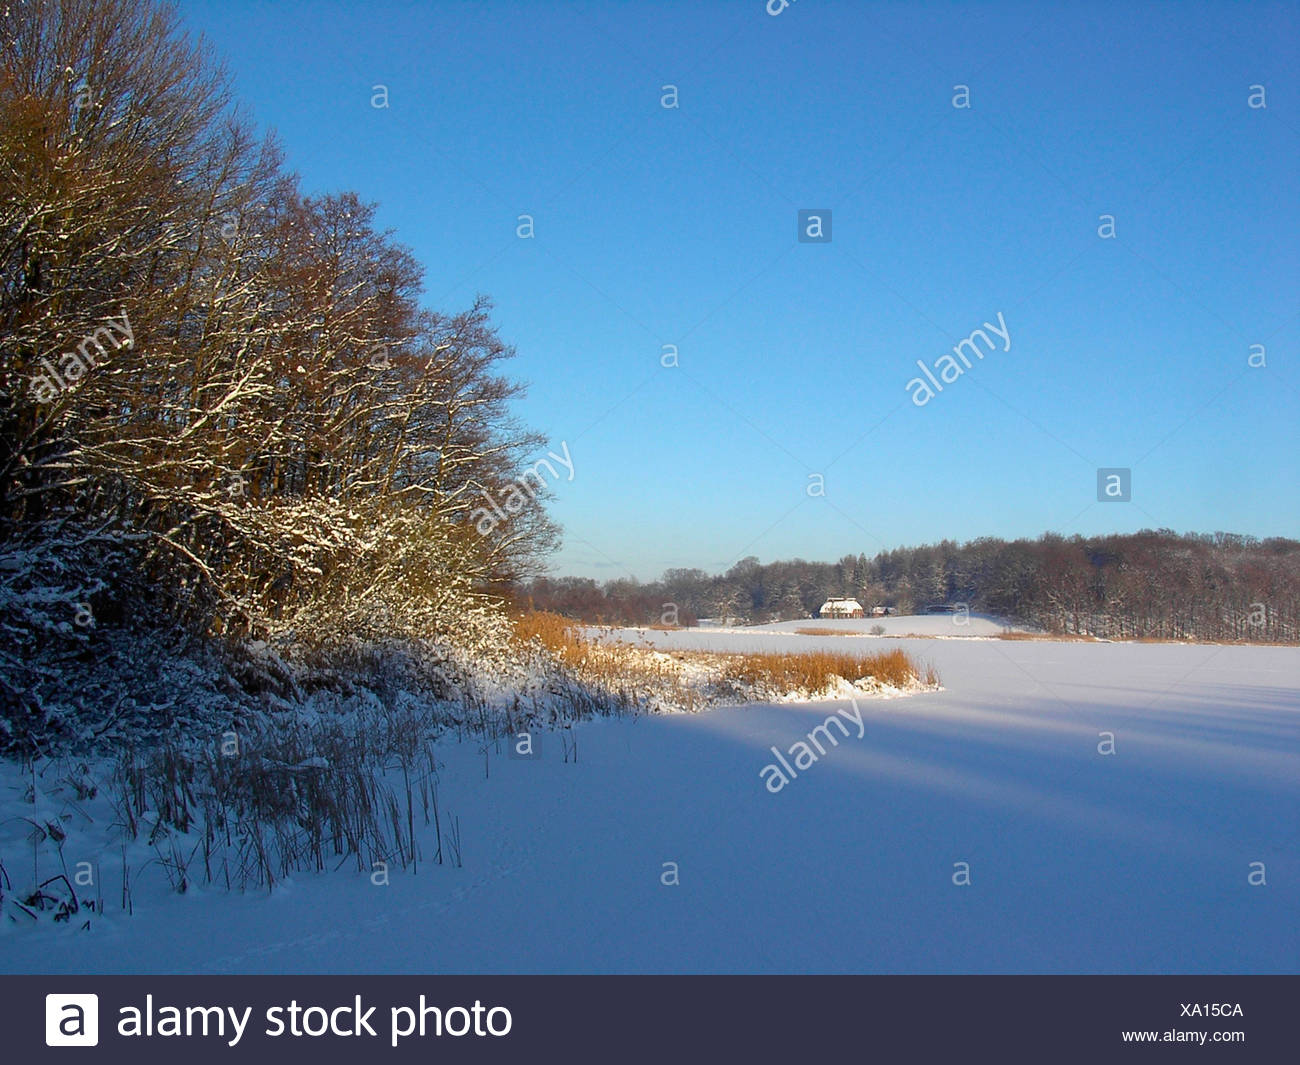 trees Germany Europe froze body of water scenery reed snow lake sea shore wood forest winter iceboundl - Stock Image